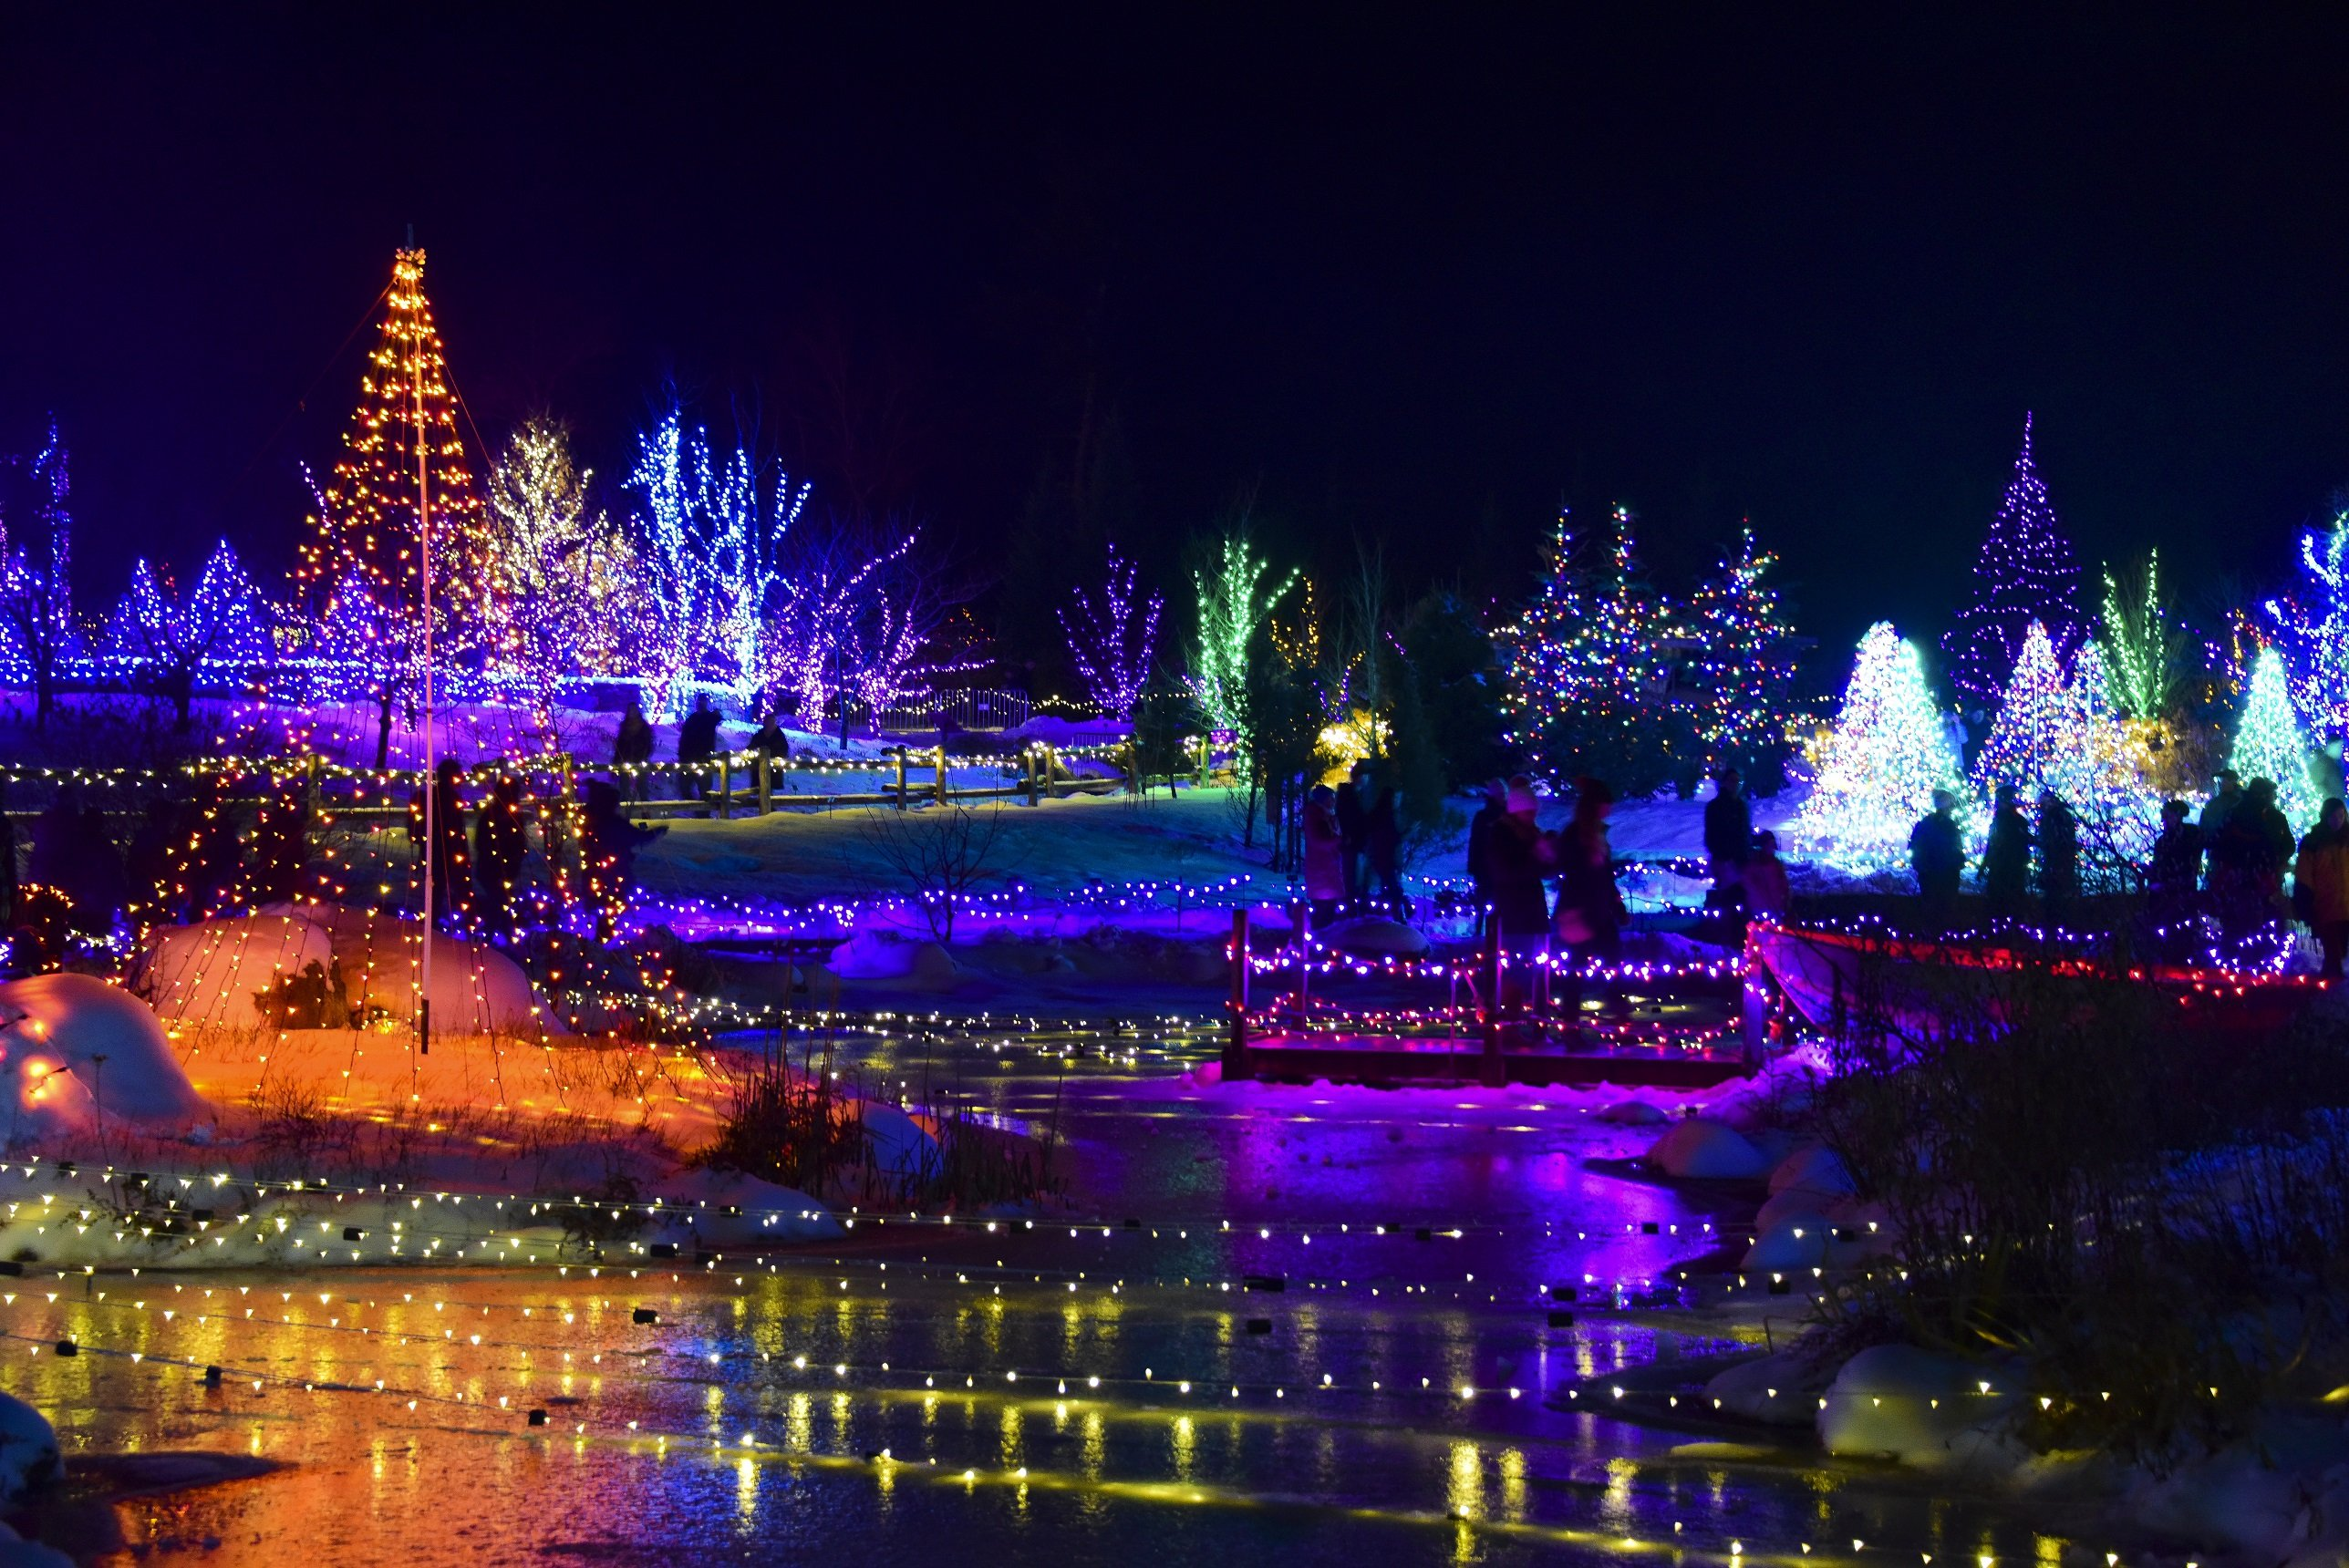 Lights reflected on the water during Gardens Aglow